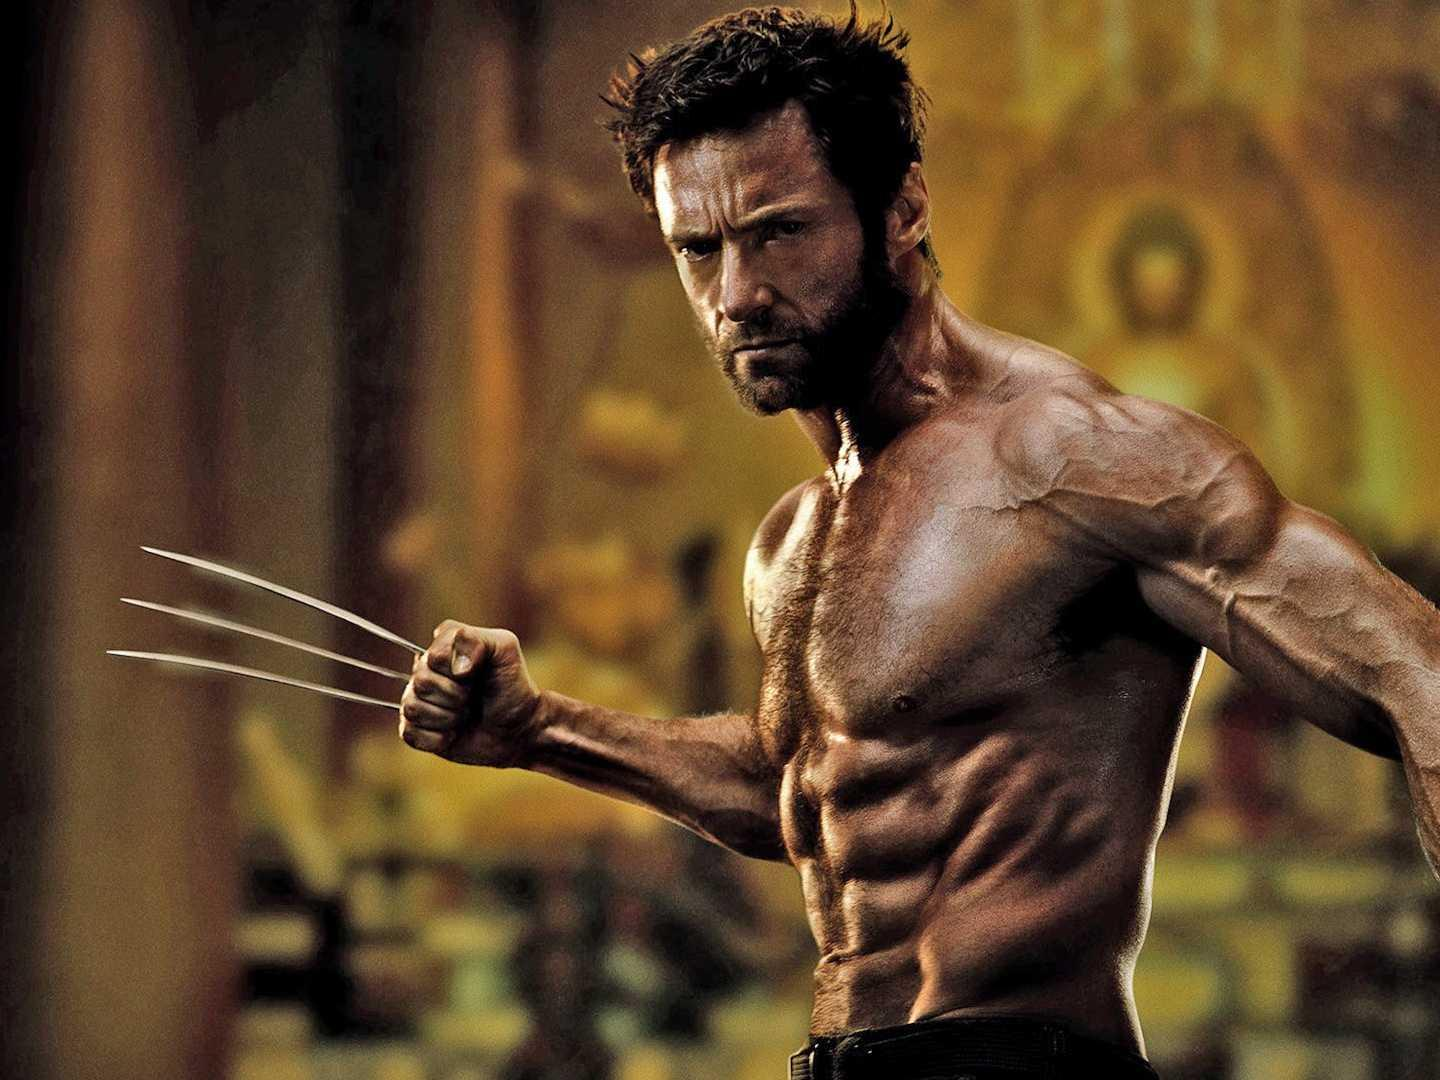 Hugh Jackman On Instagram: Role In 'Wolverine 3′ Will Be His Last